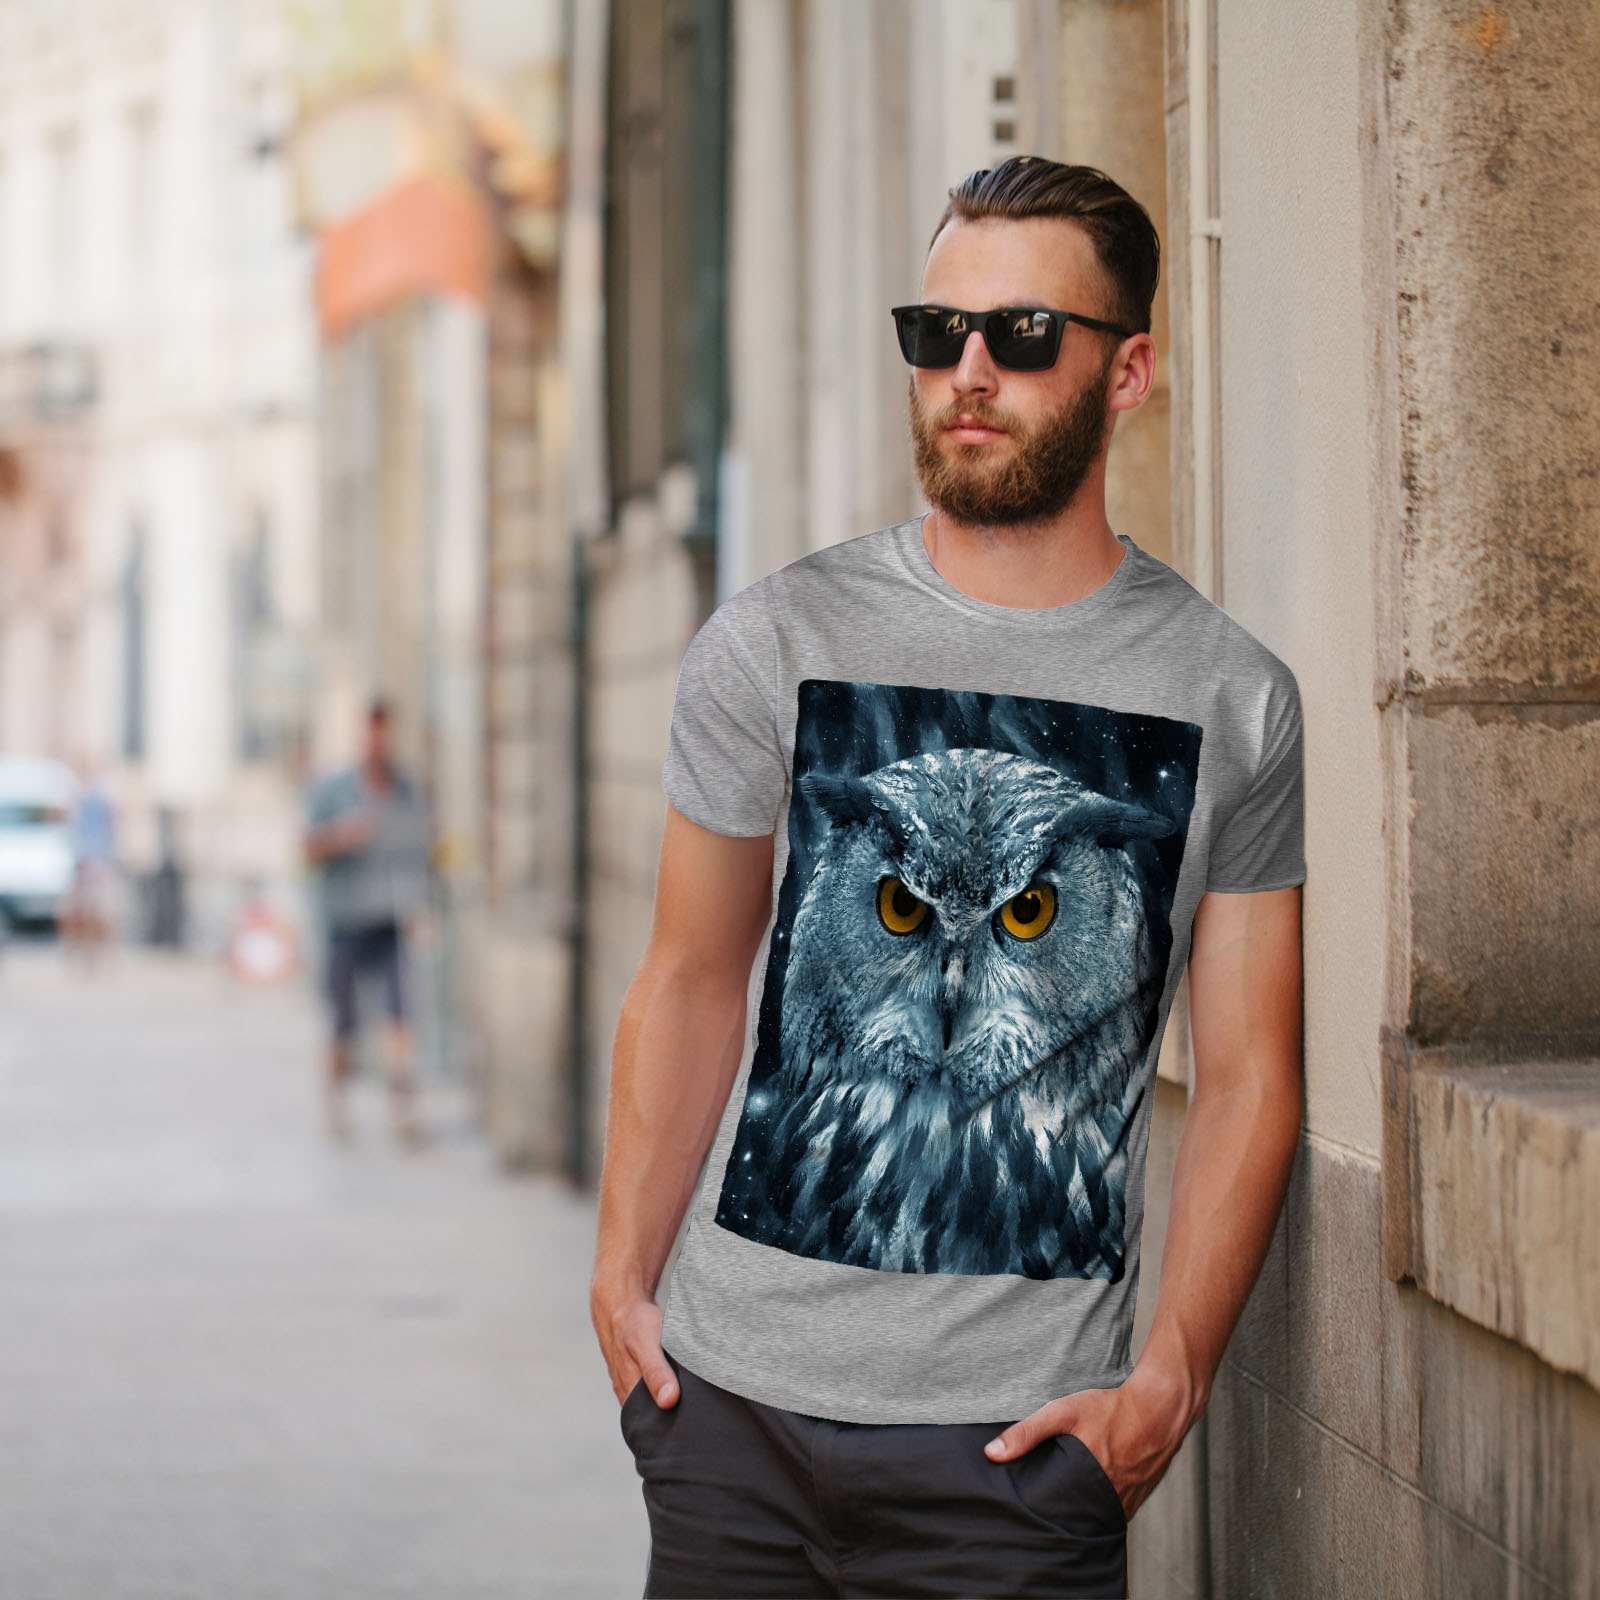 miniature 17 - Wellcoda-Wild-Looking-Owl-Mens-T-shirt-Mother-Graphic-Design-Printed-Tee